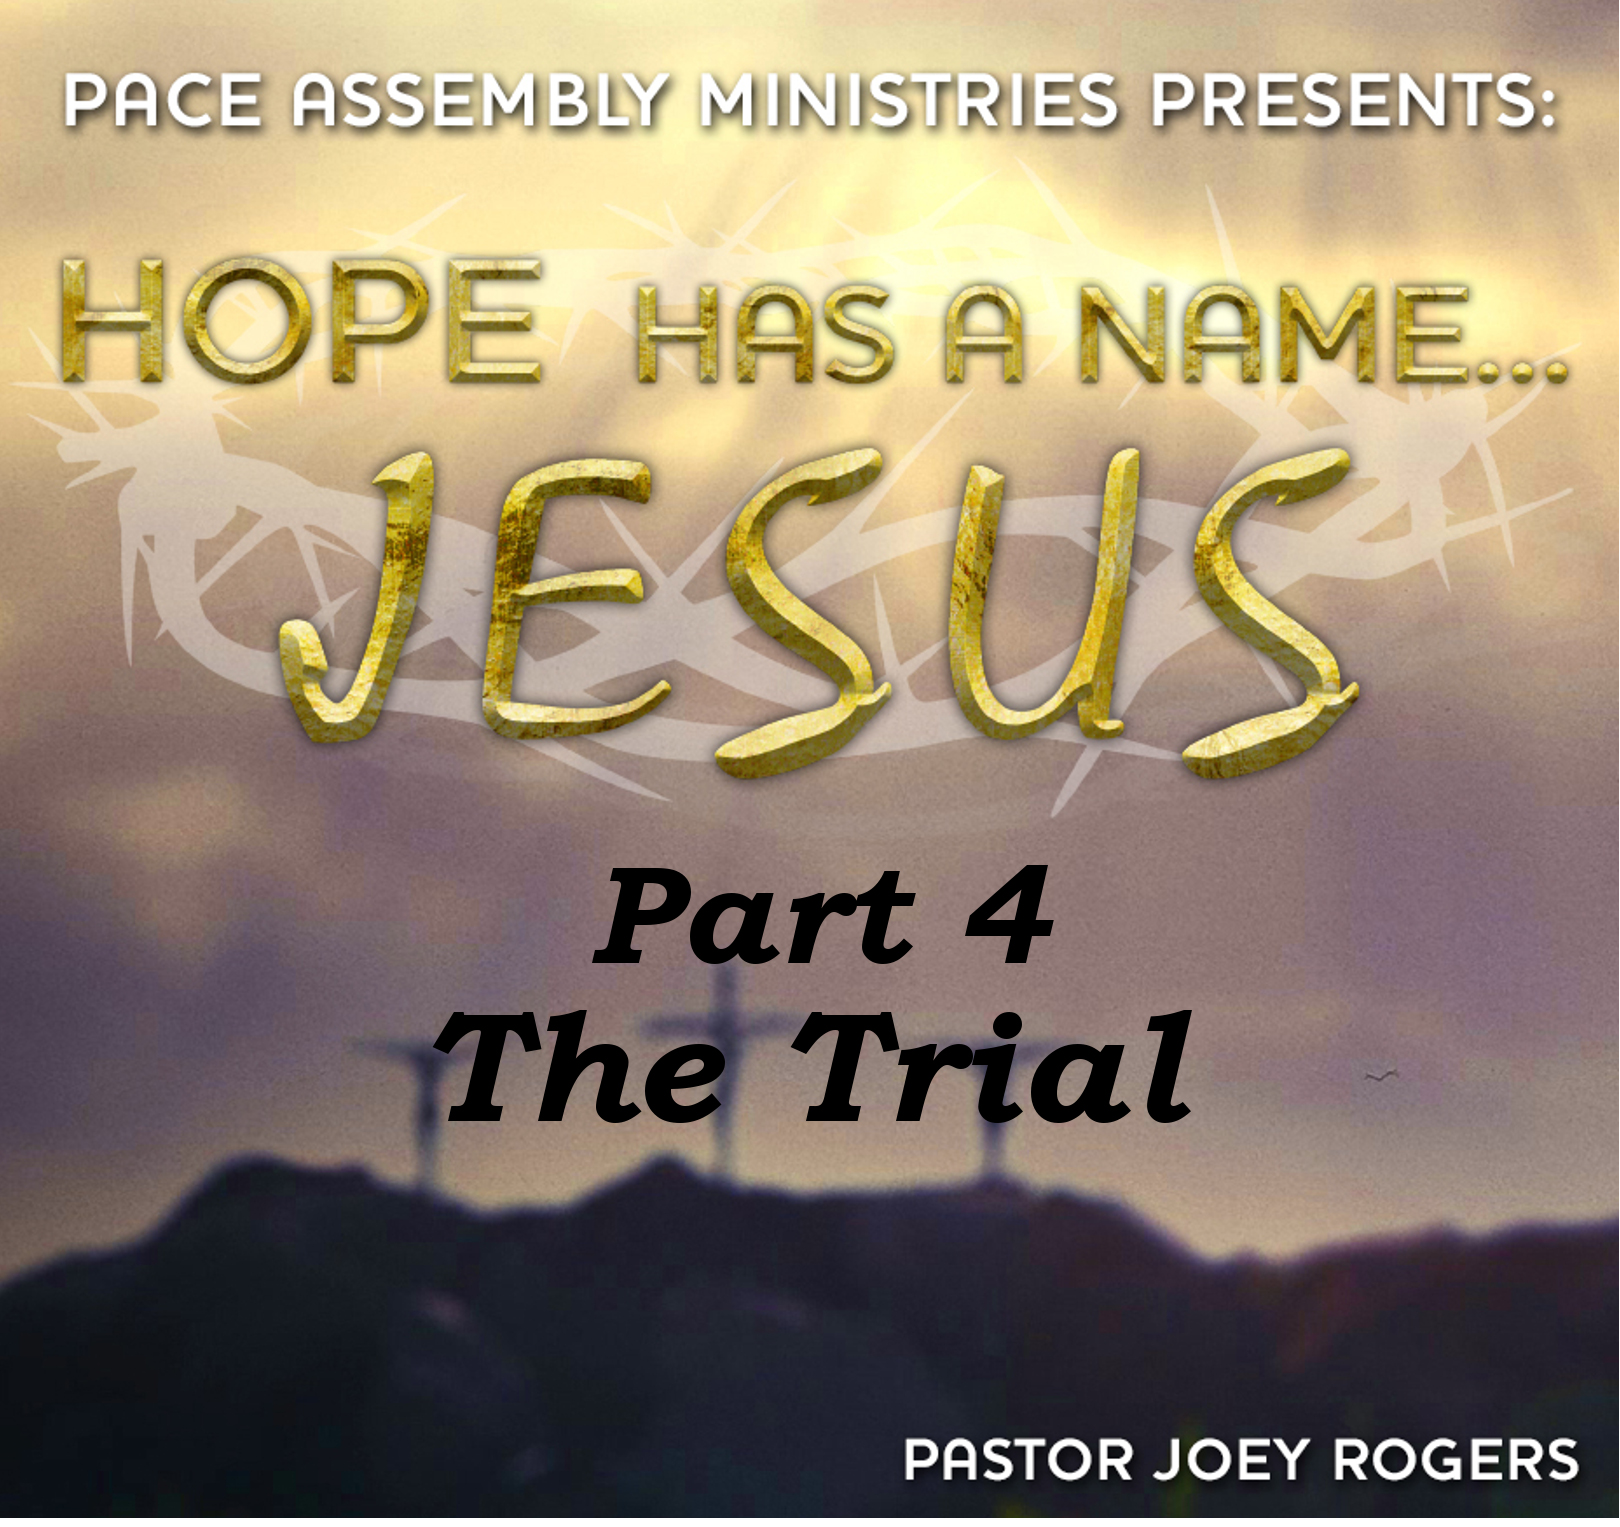 Hope Has a Name... Jesus Part 4 - The Trial